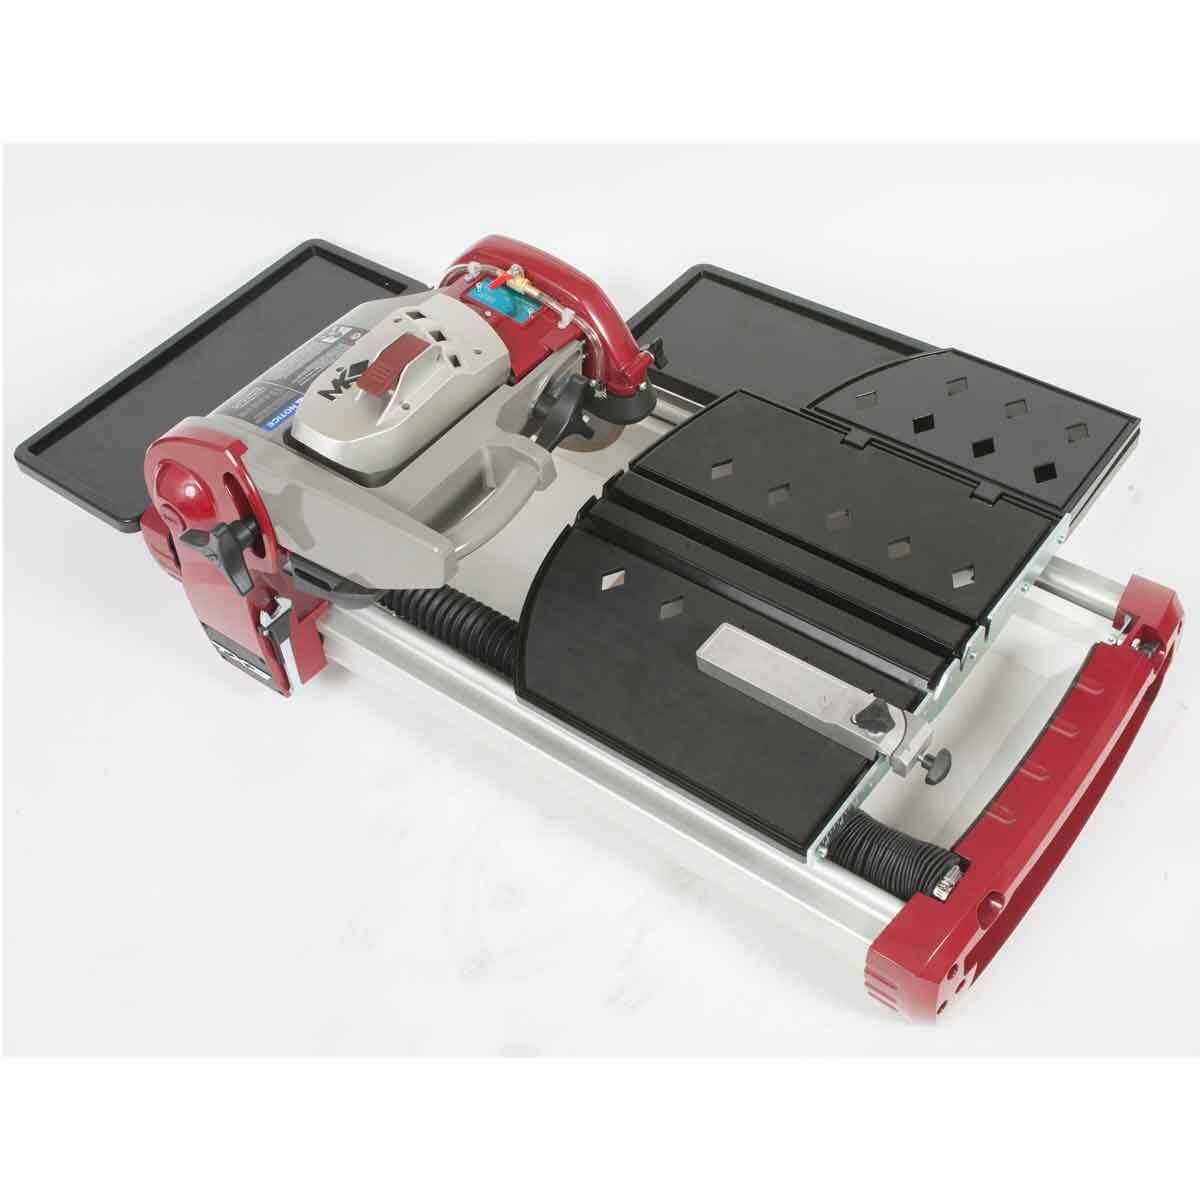 MK TX-4 Wet Tile Saw with all components